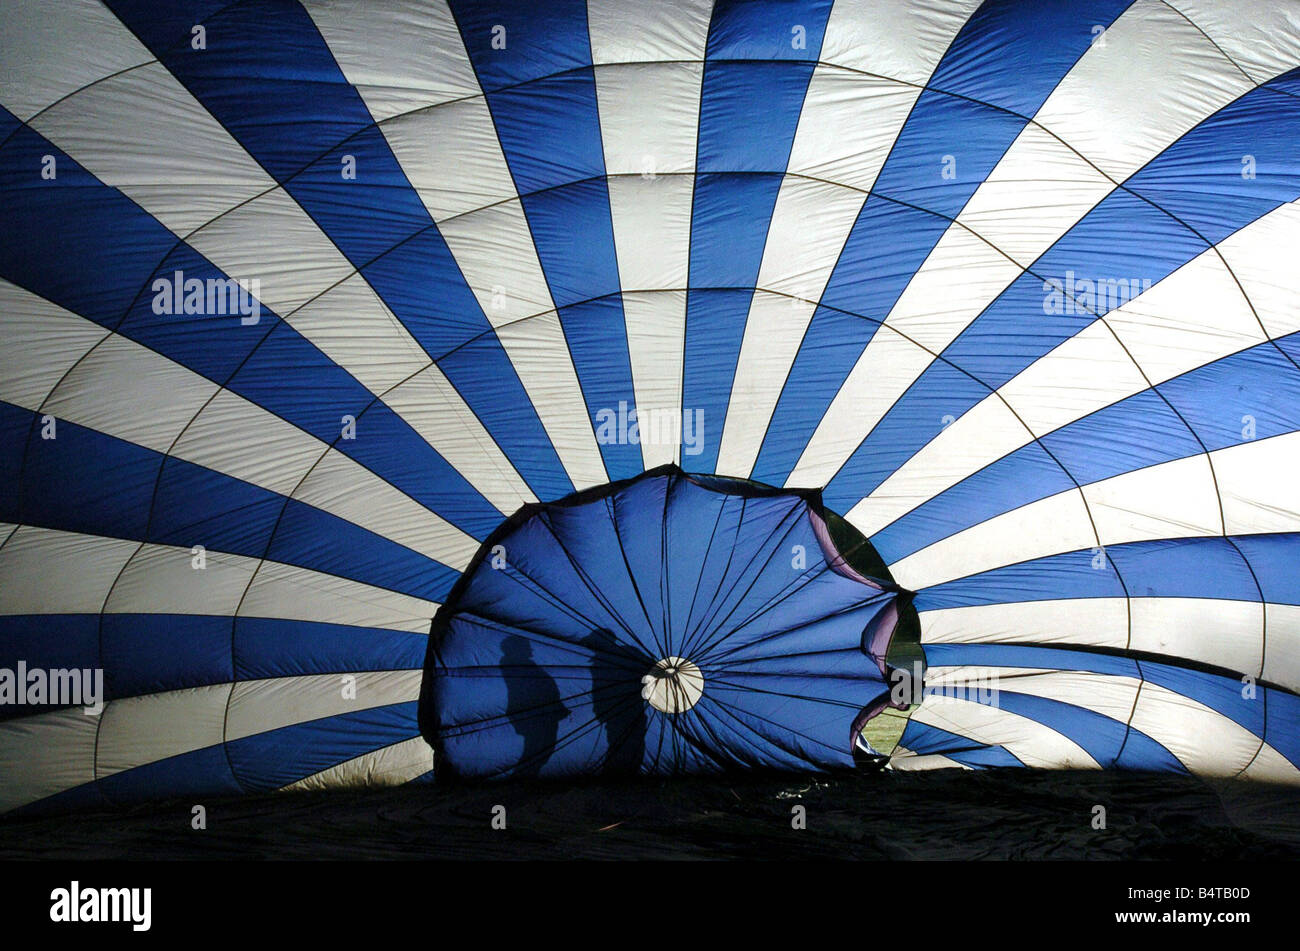 Hot Air Balloon Festival Cofton Park Longbridge Balloons at WMSP are inflated for a staggered take off - Stock Image